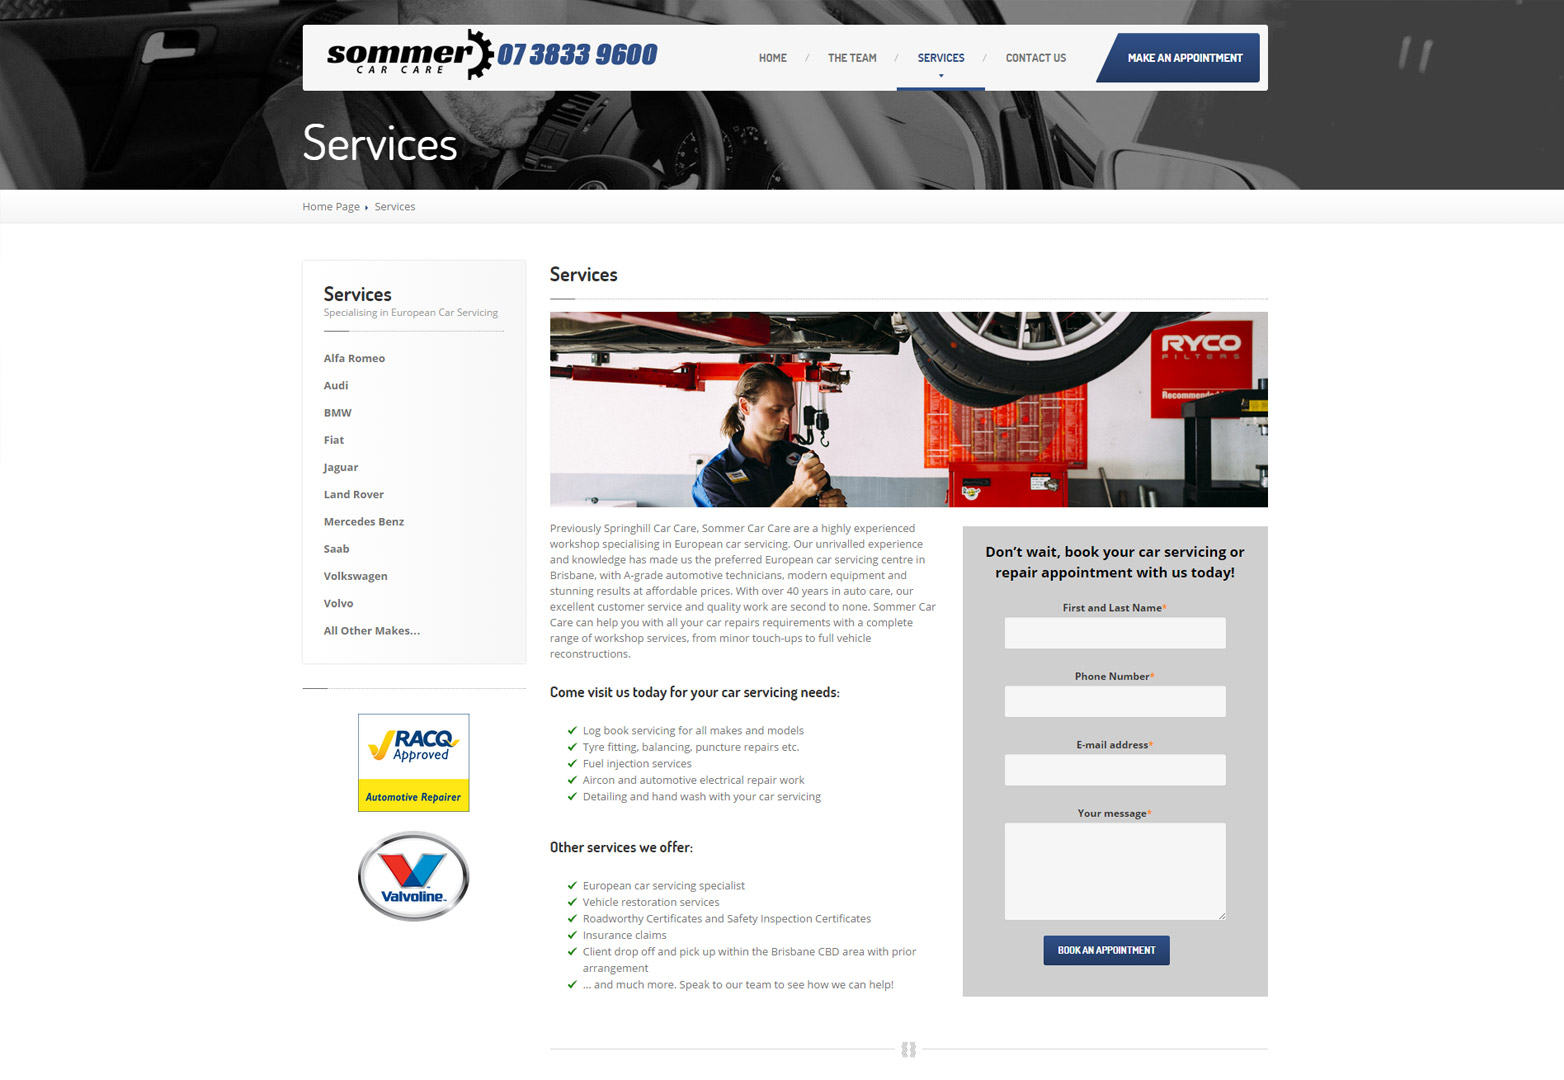 Sommer Car Care Services page desktop view